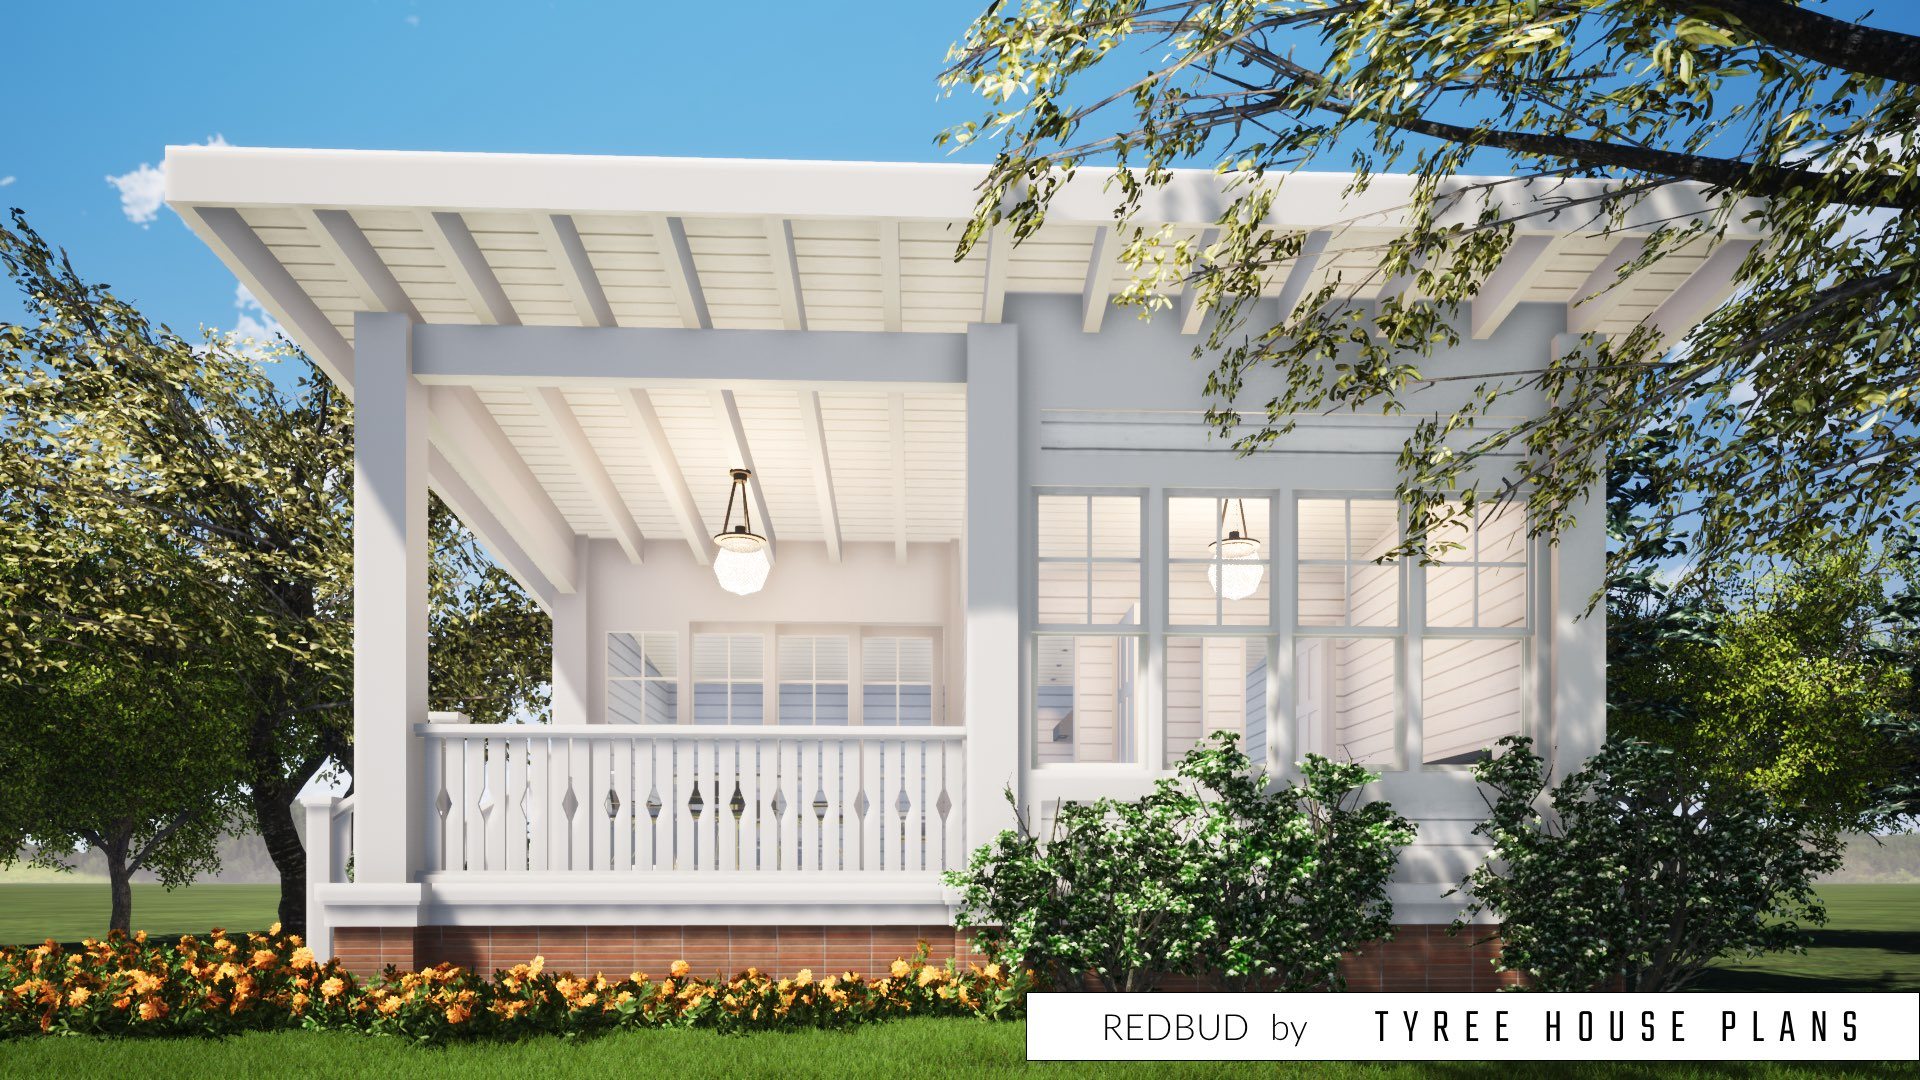 Redbud House Plan by Tyree House Plans